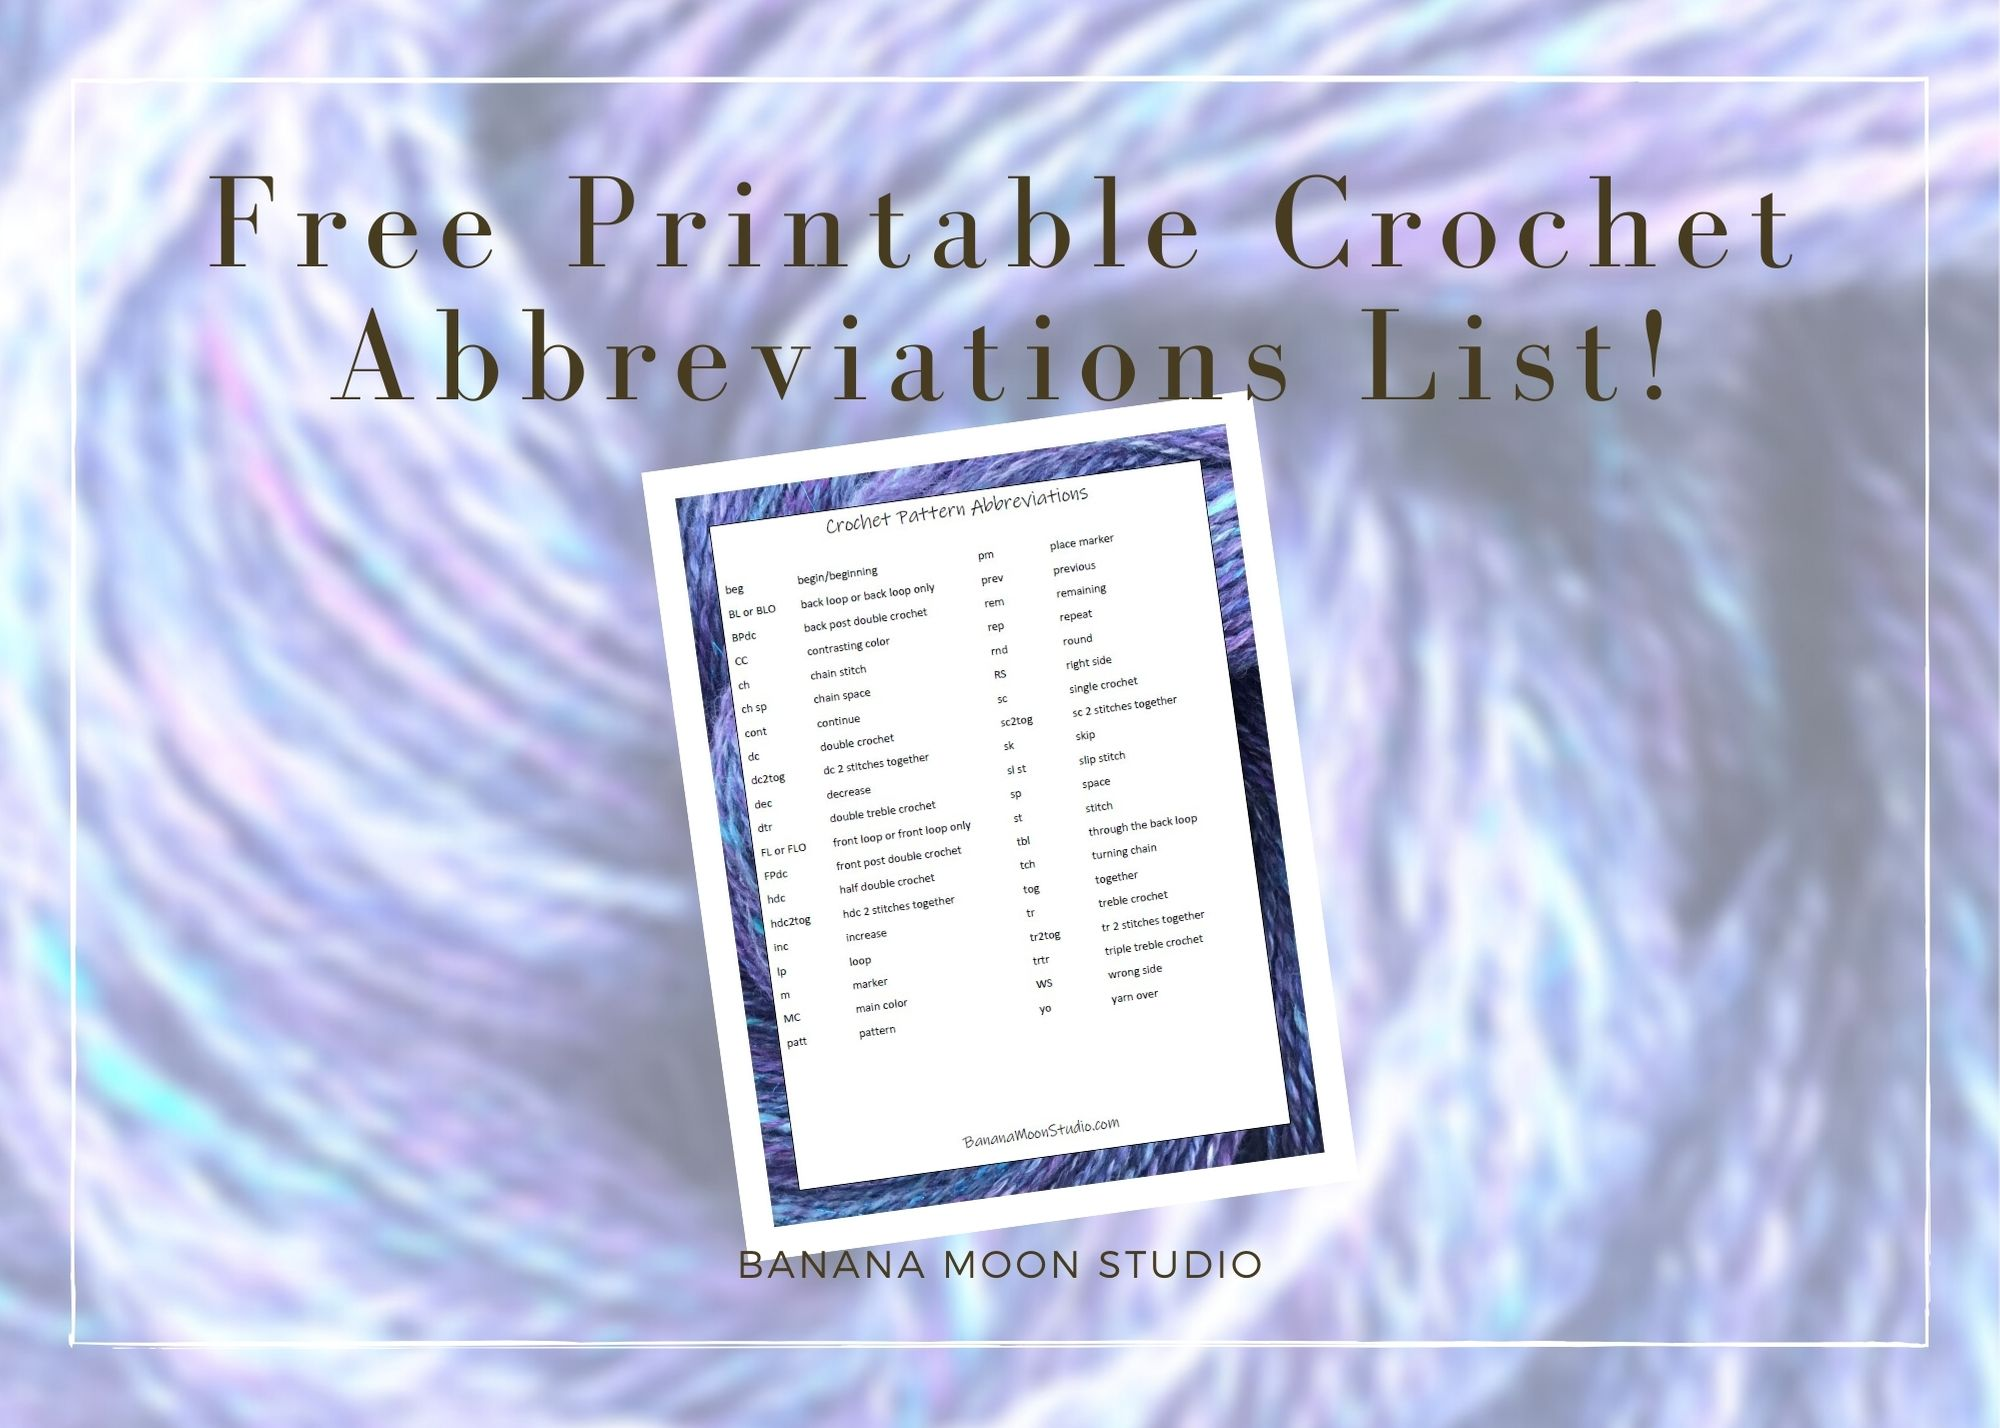 Learn to read written crochet patterns with this free printable crochet abbreviations list from Banana Moon Studio!